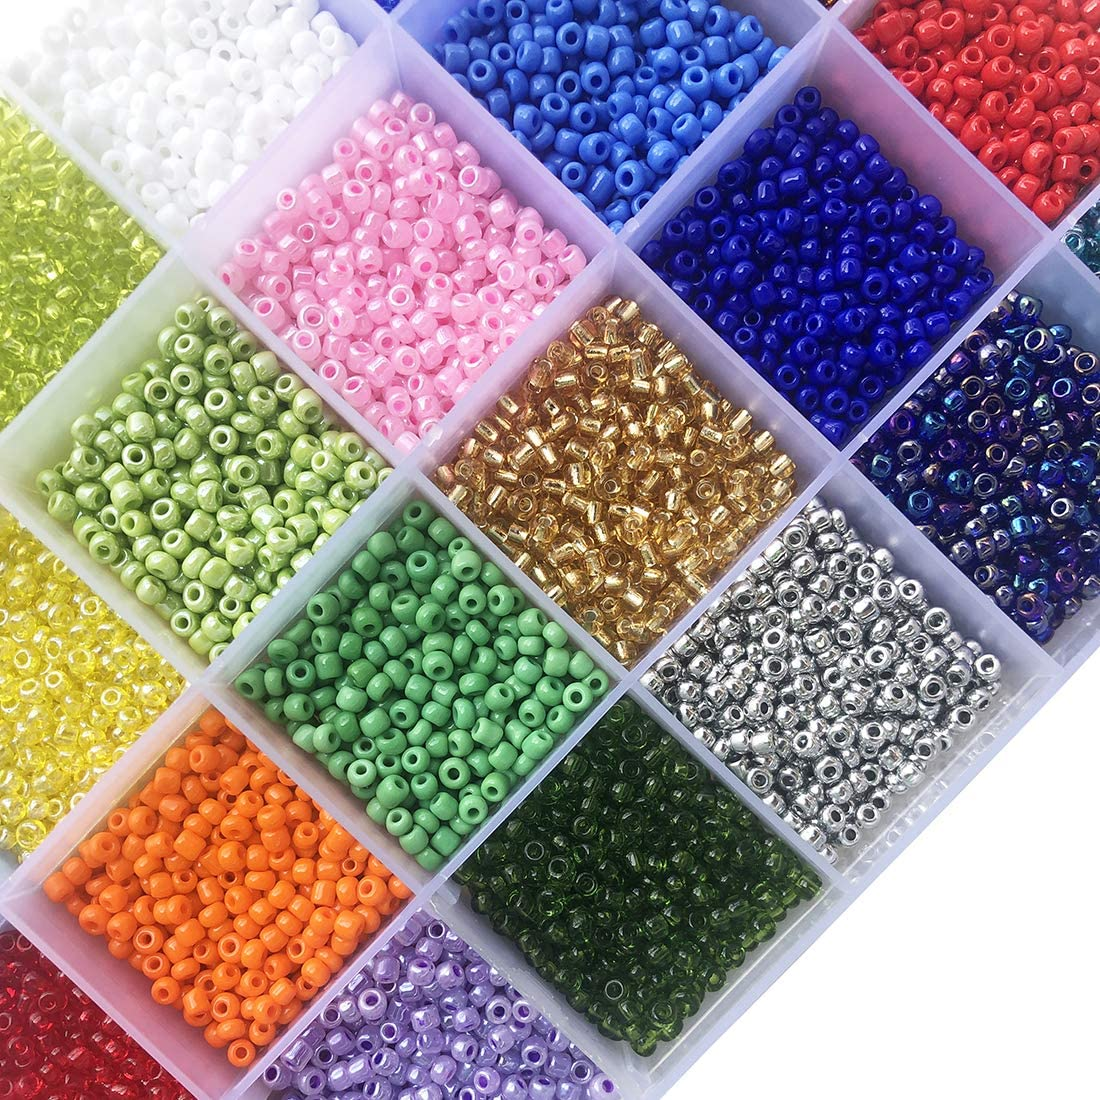 35g of Beautiful multicoloured seed beadsbeadscraft beadsseed beadskids craftsewingmulticolouredmini beads